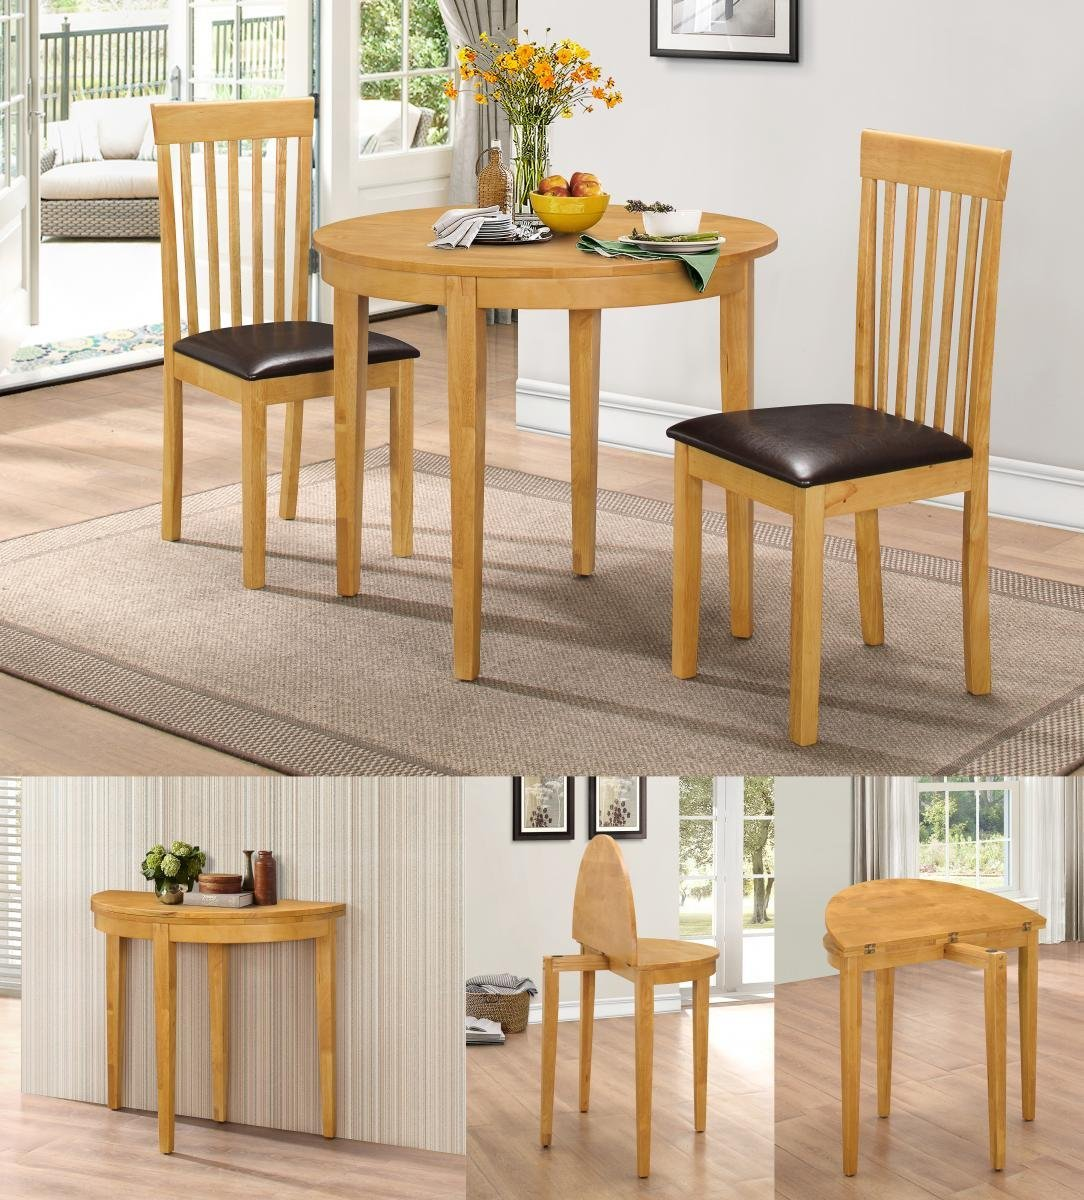 Incredible Hgg Dining Table Set With 2 Chairs Rubberwood Furniture Small Table And 2 Chairs Kitchen Table And 2 Chairs Extending Dining Table Small Complete Home Design Collection Epsylindsey Bellcom